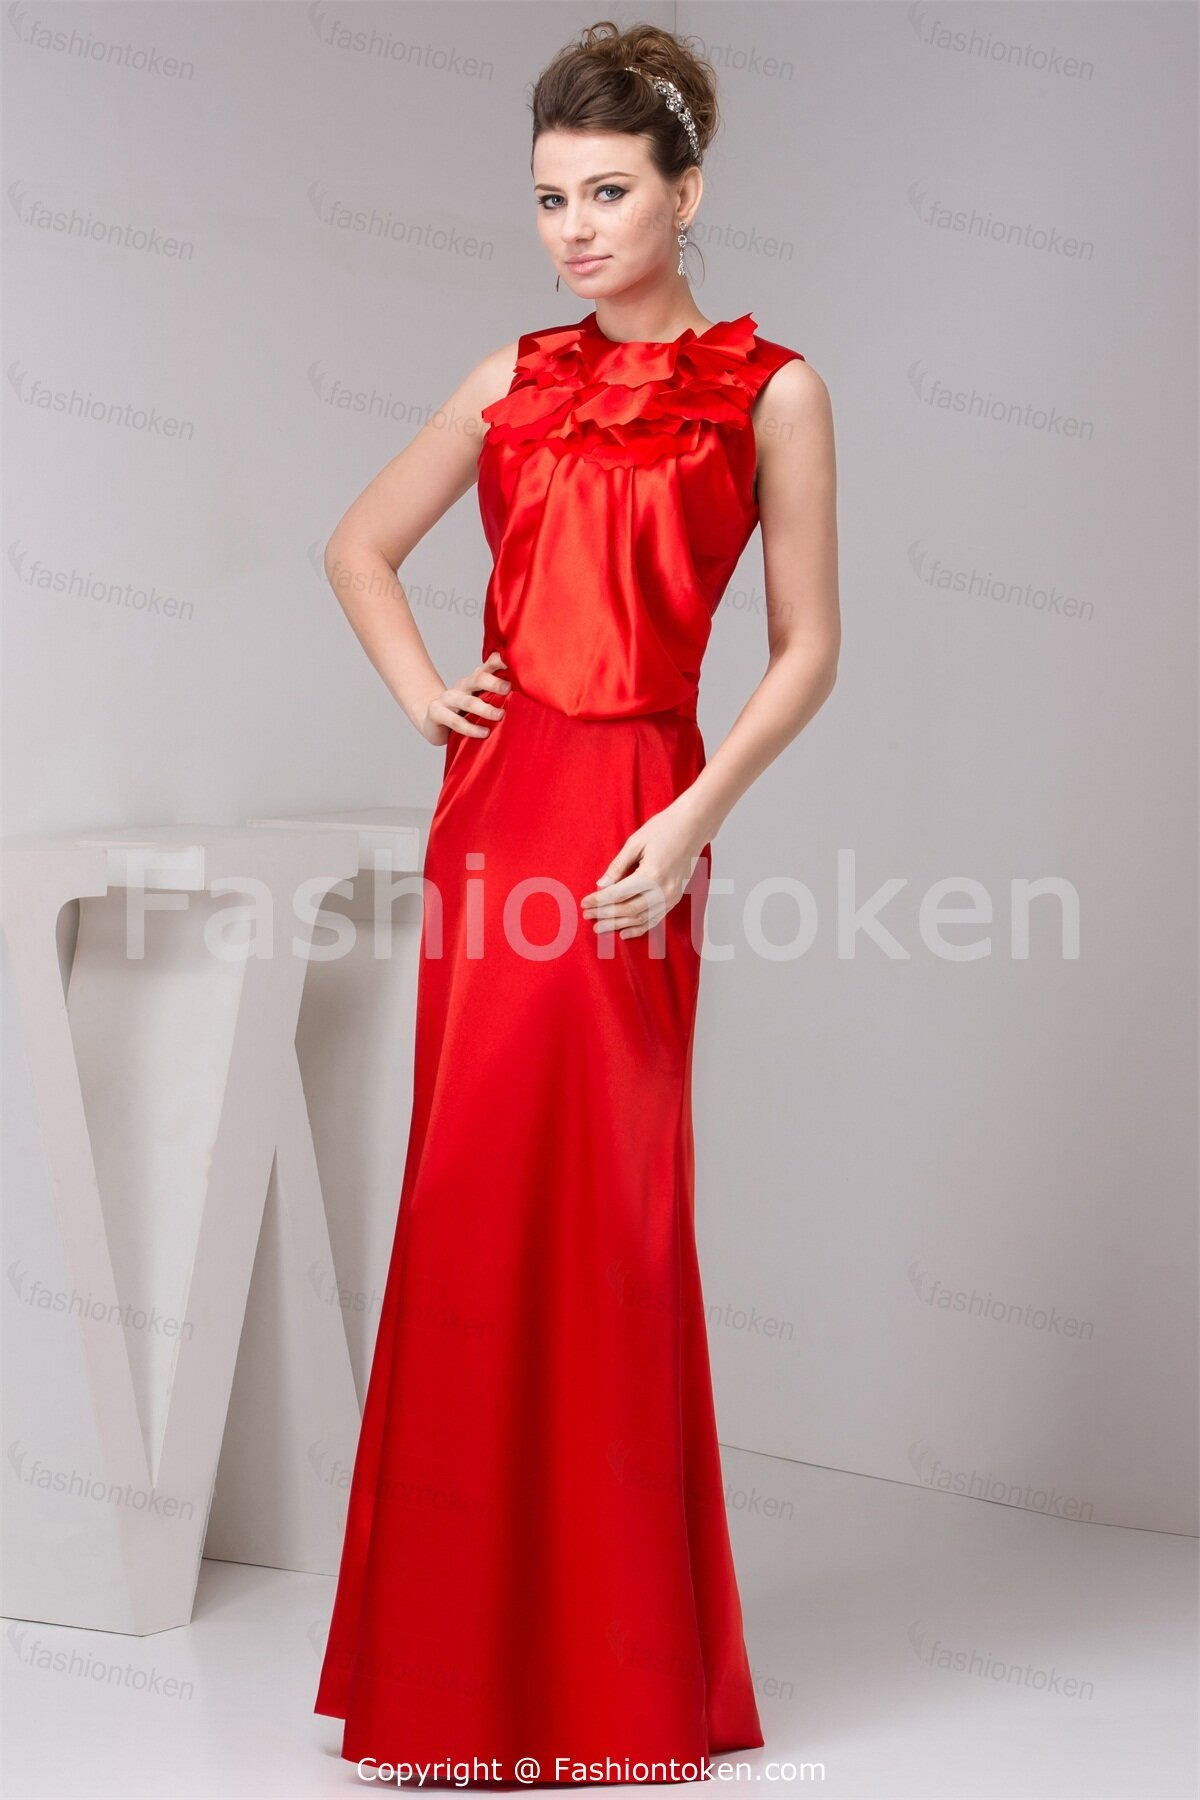 Spring wedding guest dresses photo 2 browse pictures for Where to buy wedding guest dresses